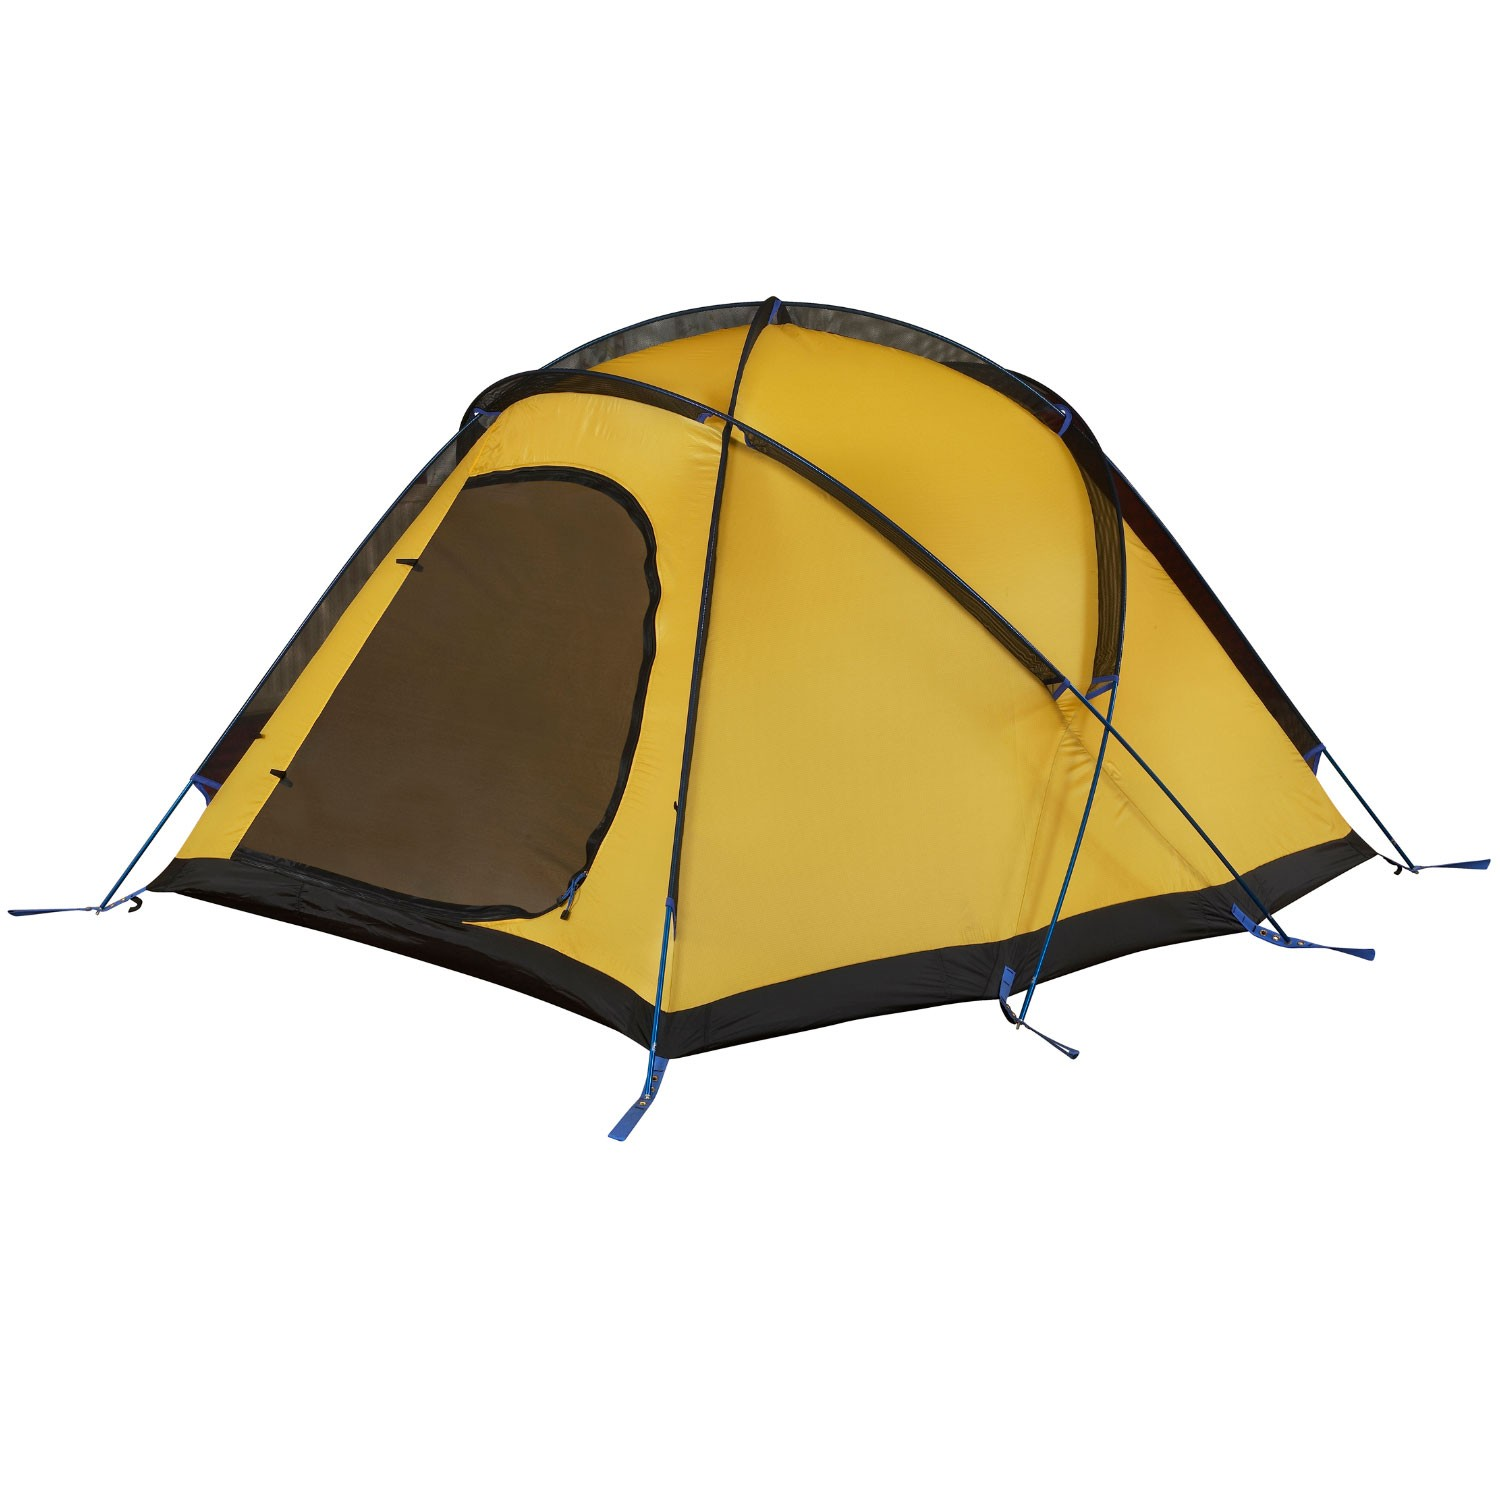 The Terra Nova Hyperspace 3-person Expedition Tent